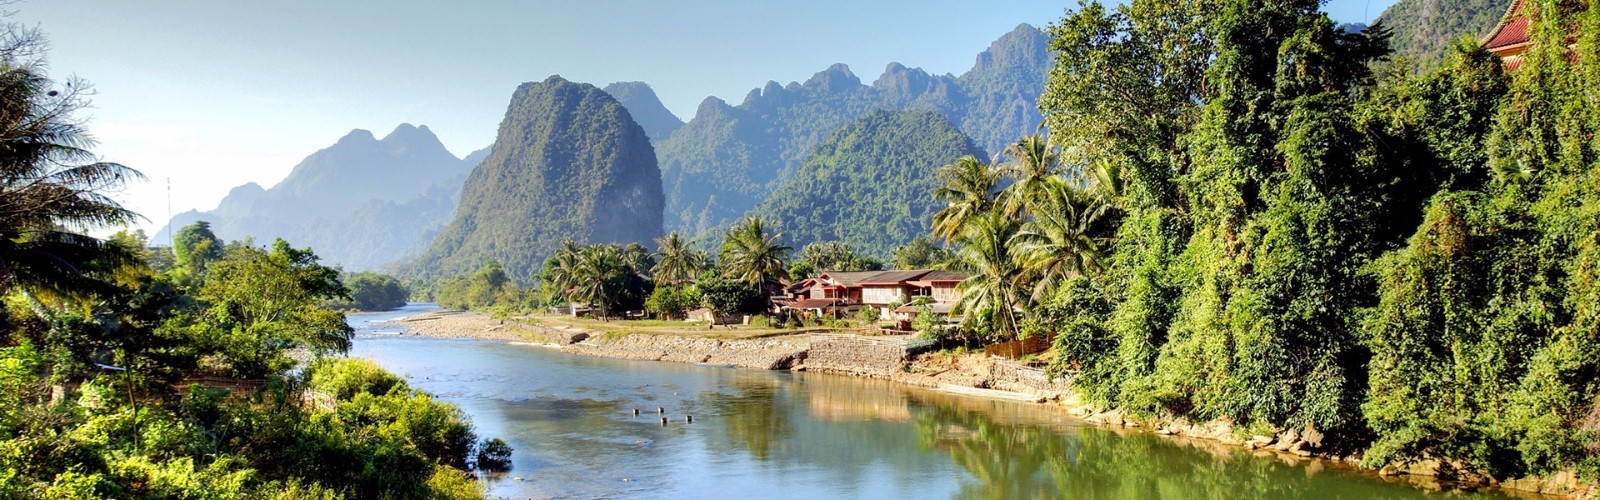 Southern Laos Escape | Laos Independent Travel | Wendy Wu